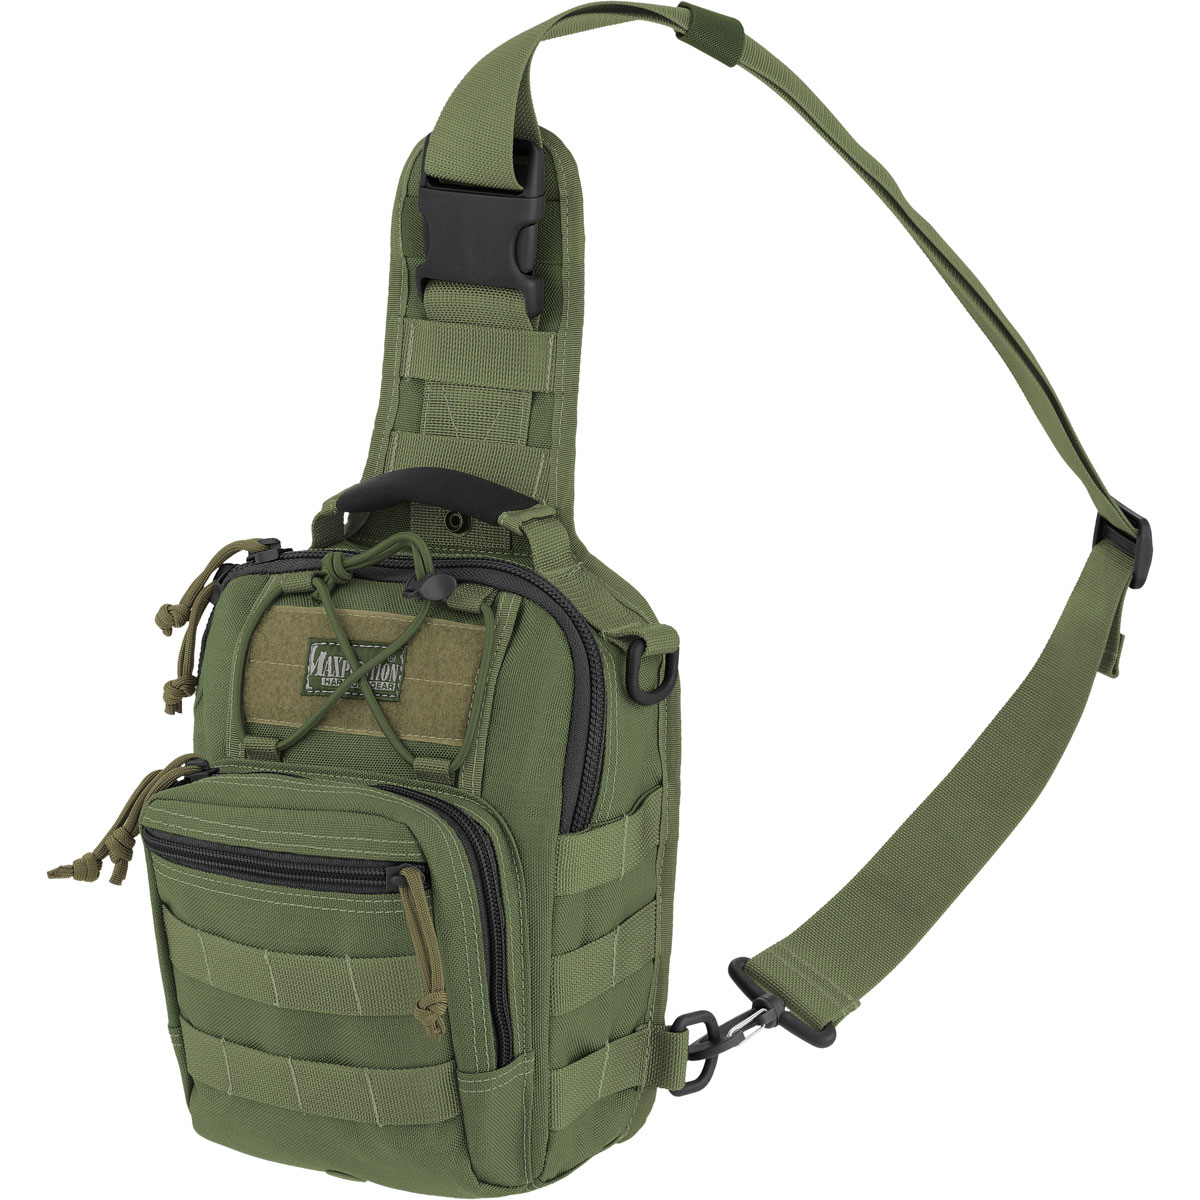 Maxpedition Remora Gearslinger (Green) Multi-Colored